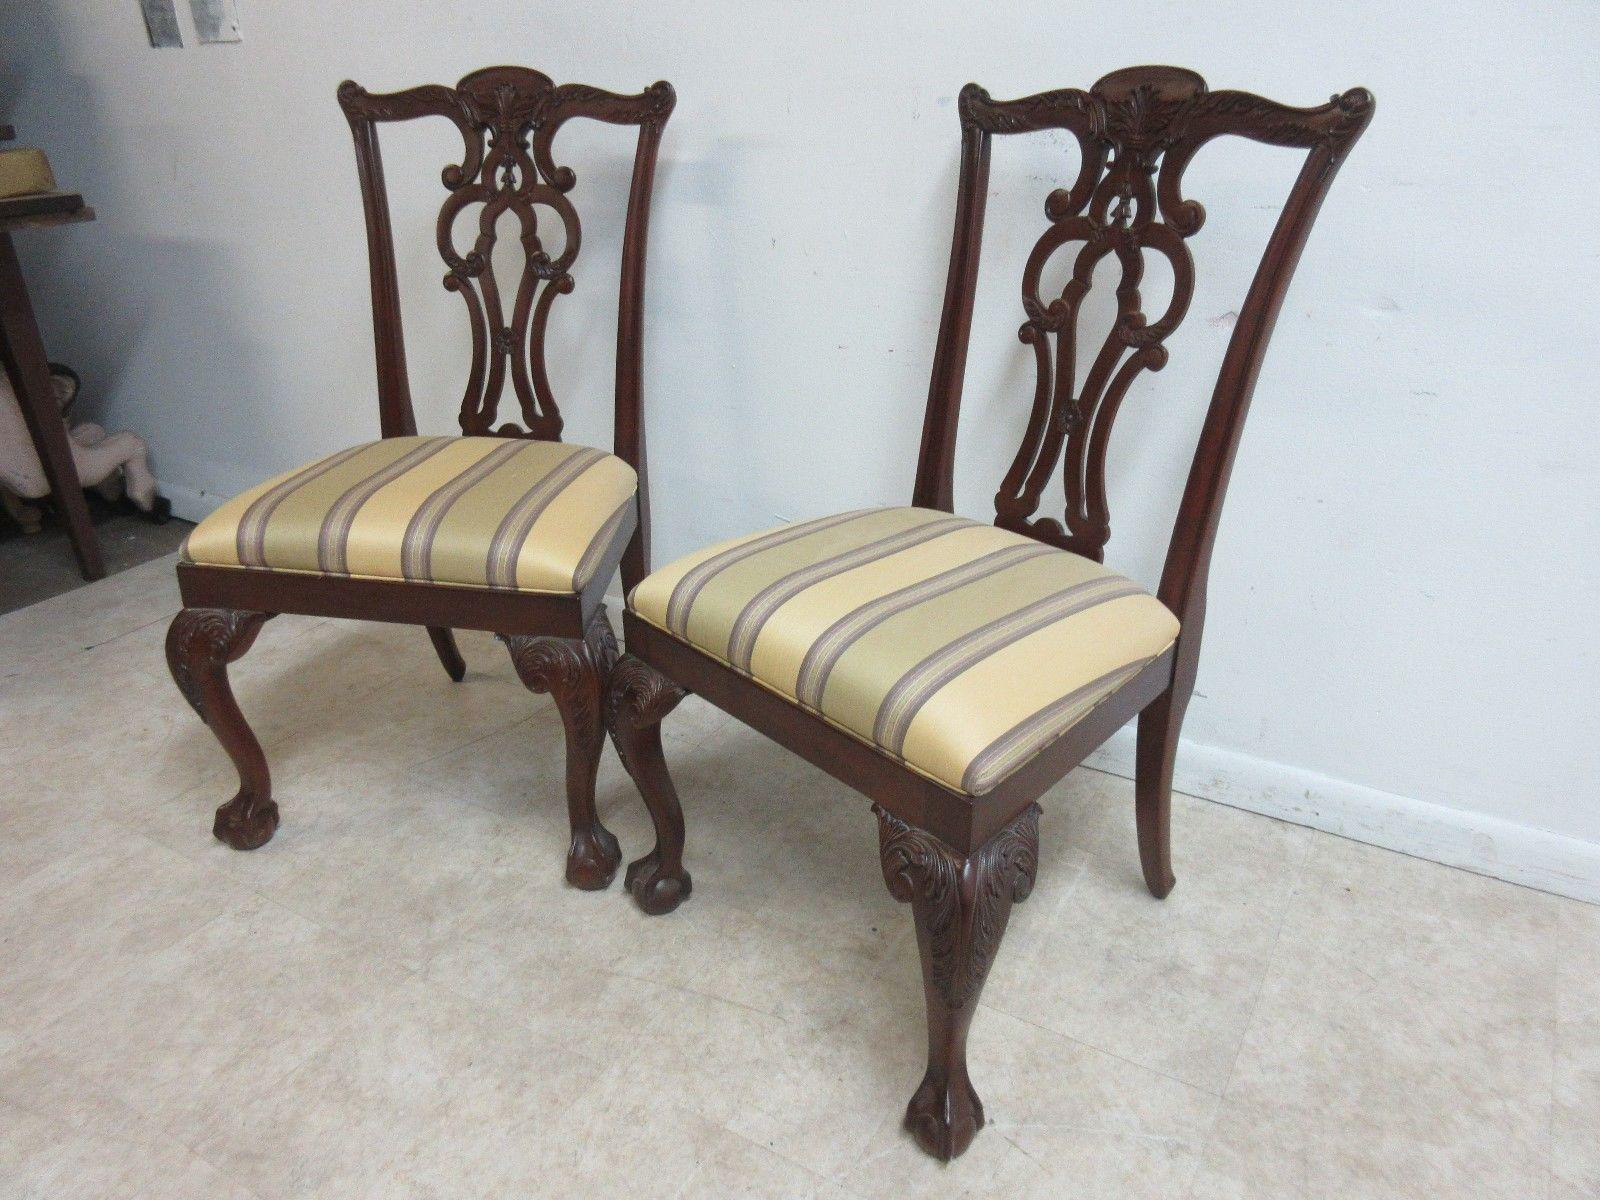 Delicieux Ethan Allen 18th Century Mahogany Chippendale Ball U0026 Claw Dining Chairs   A  Pair   Image